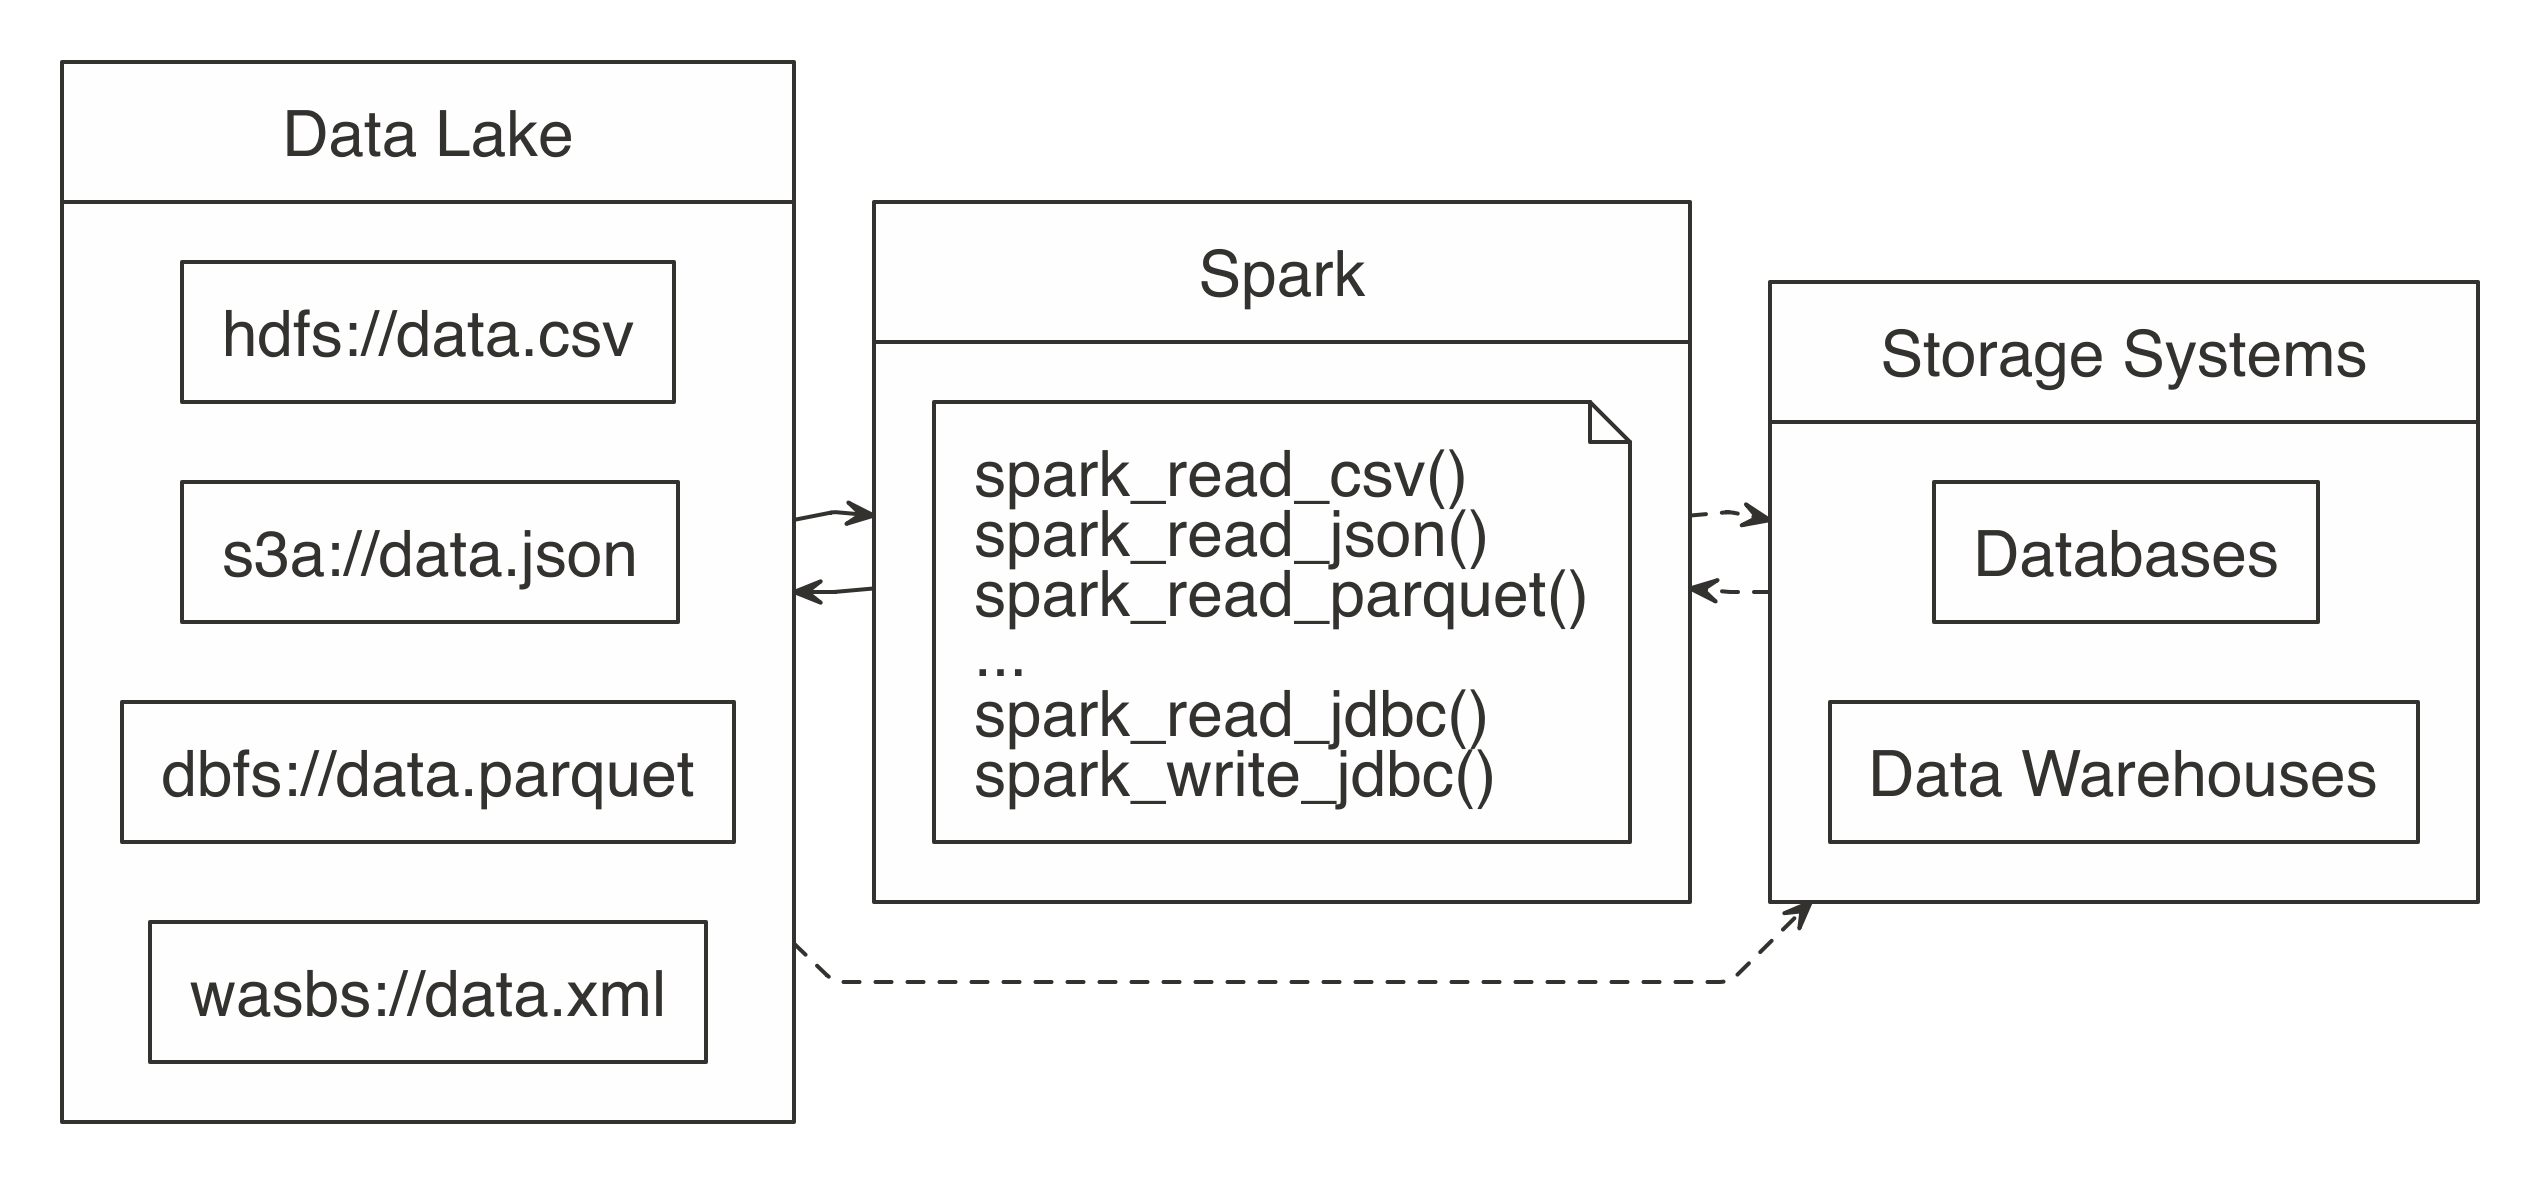 Spark processing raw data from a data lakes, databases and data warehouses||data-data-lake